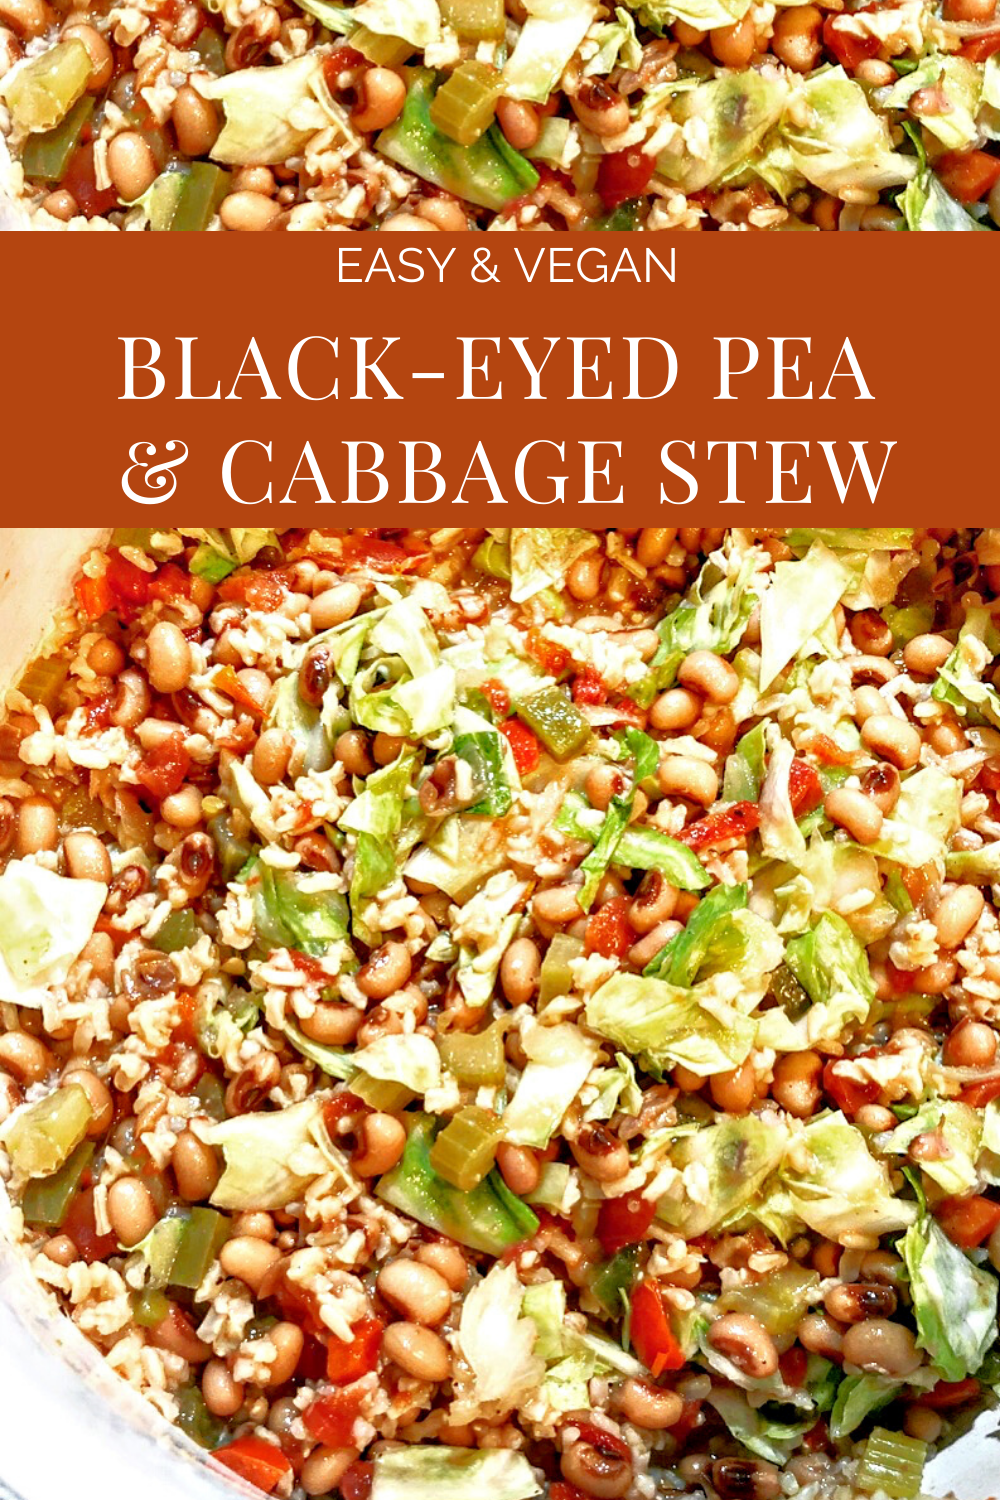 Vegan Black Eyed Pea and Cabbage Stew - Kick off the new year with hearty and healthy vegan black-eyed pea and cabbage stew! via @thiswifecooks